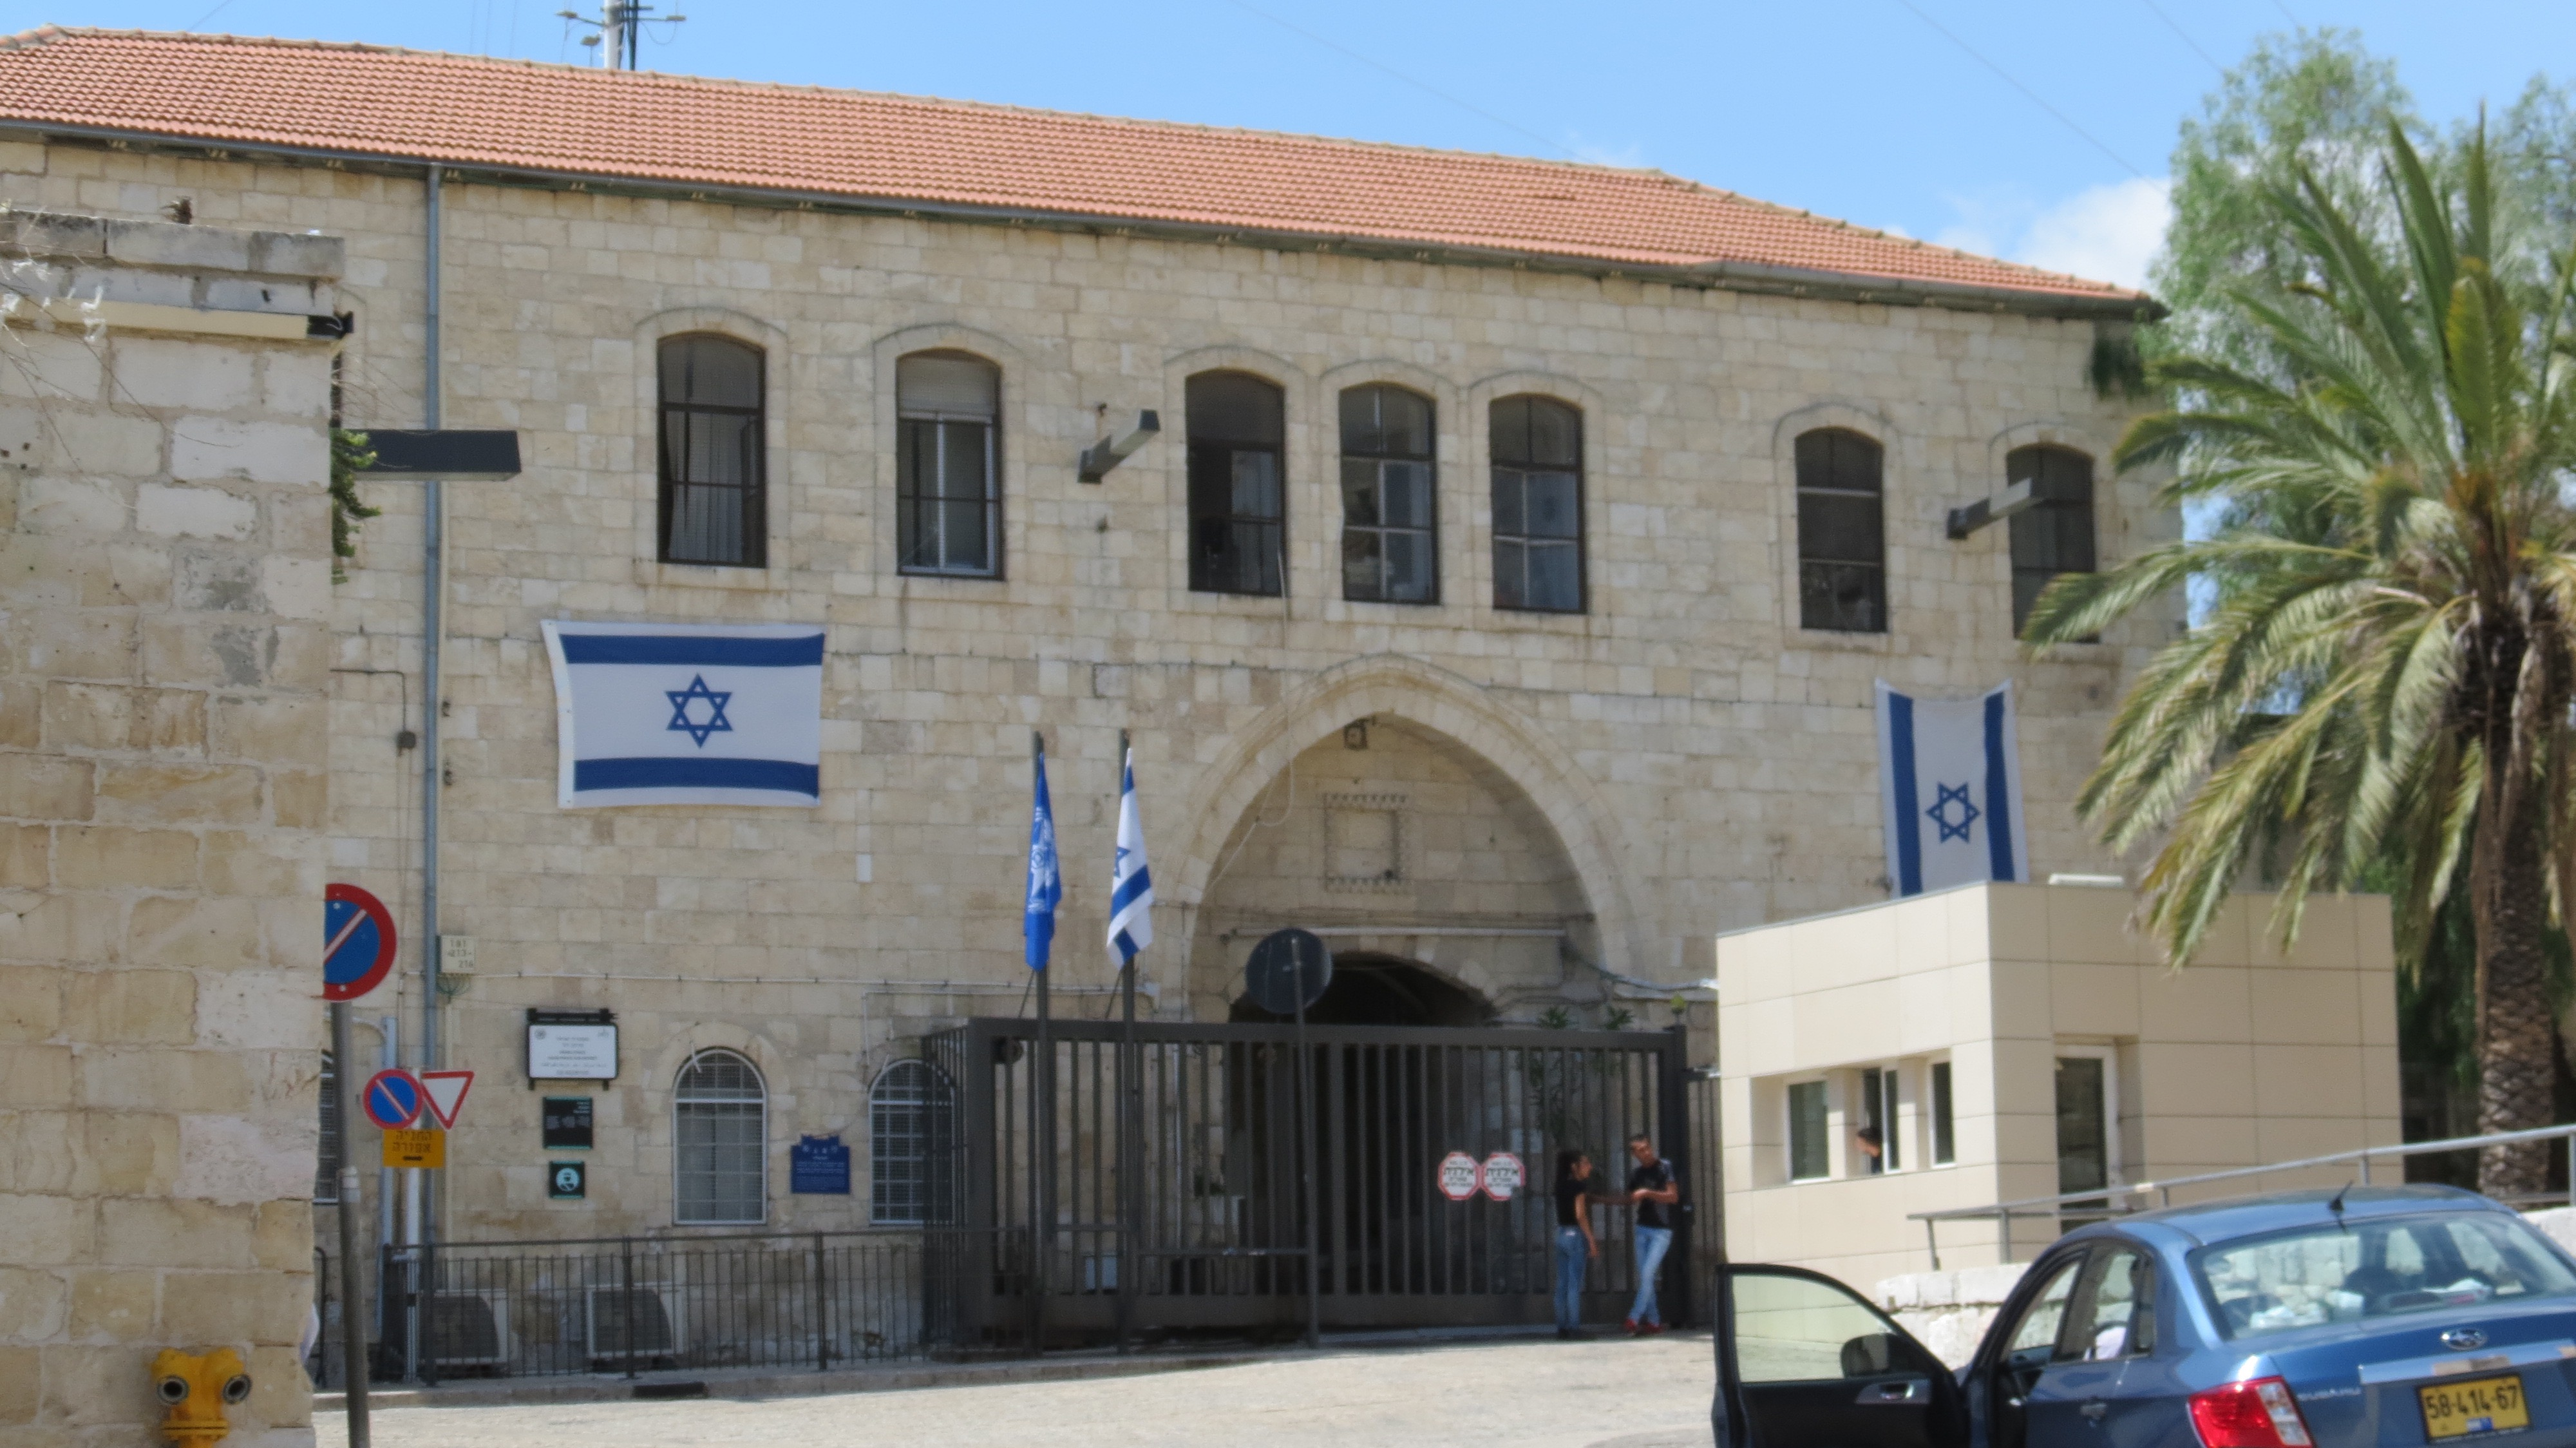 Kishle police station and prison